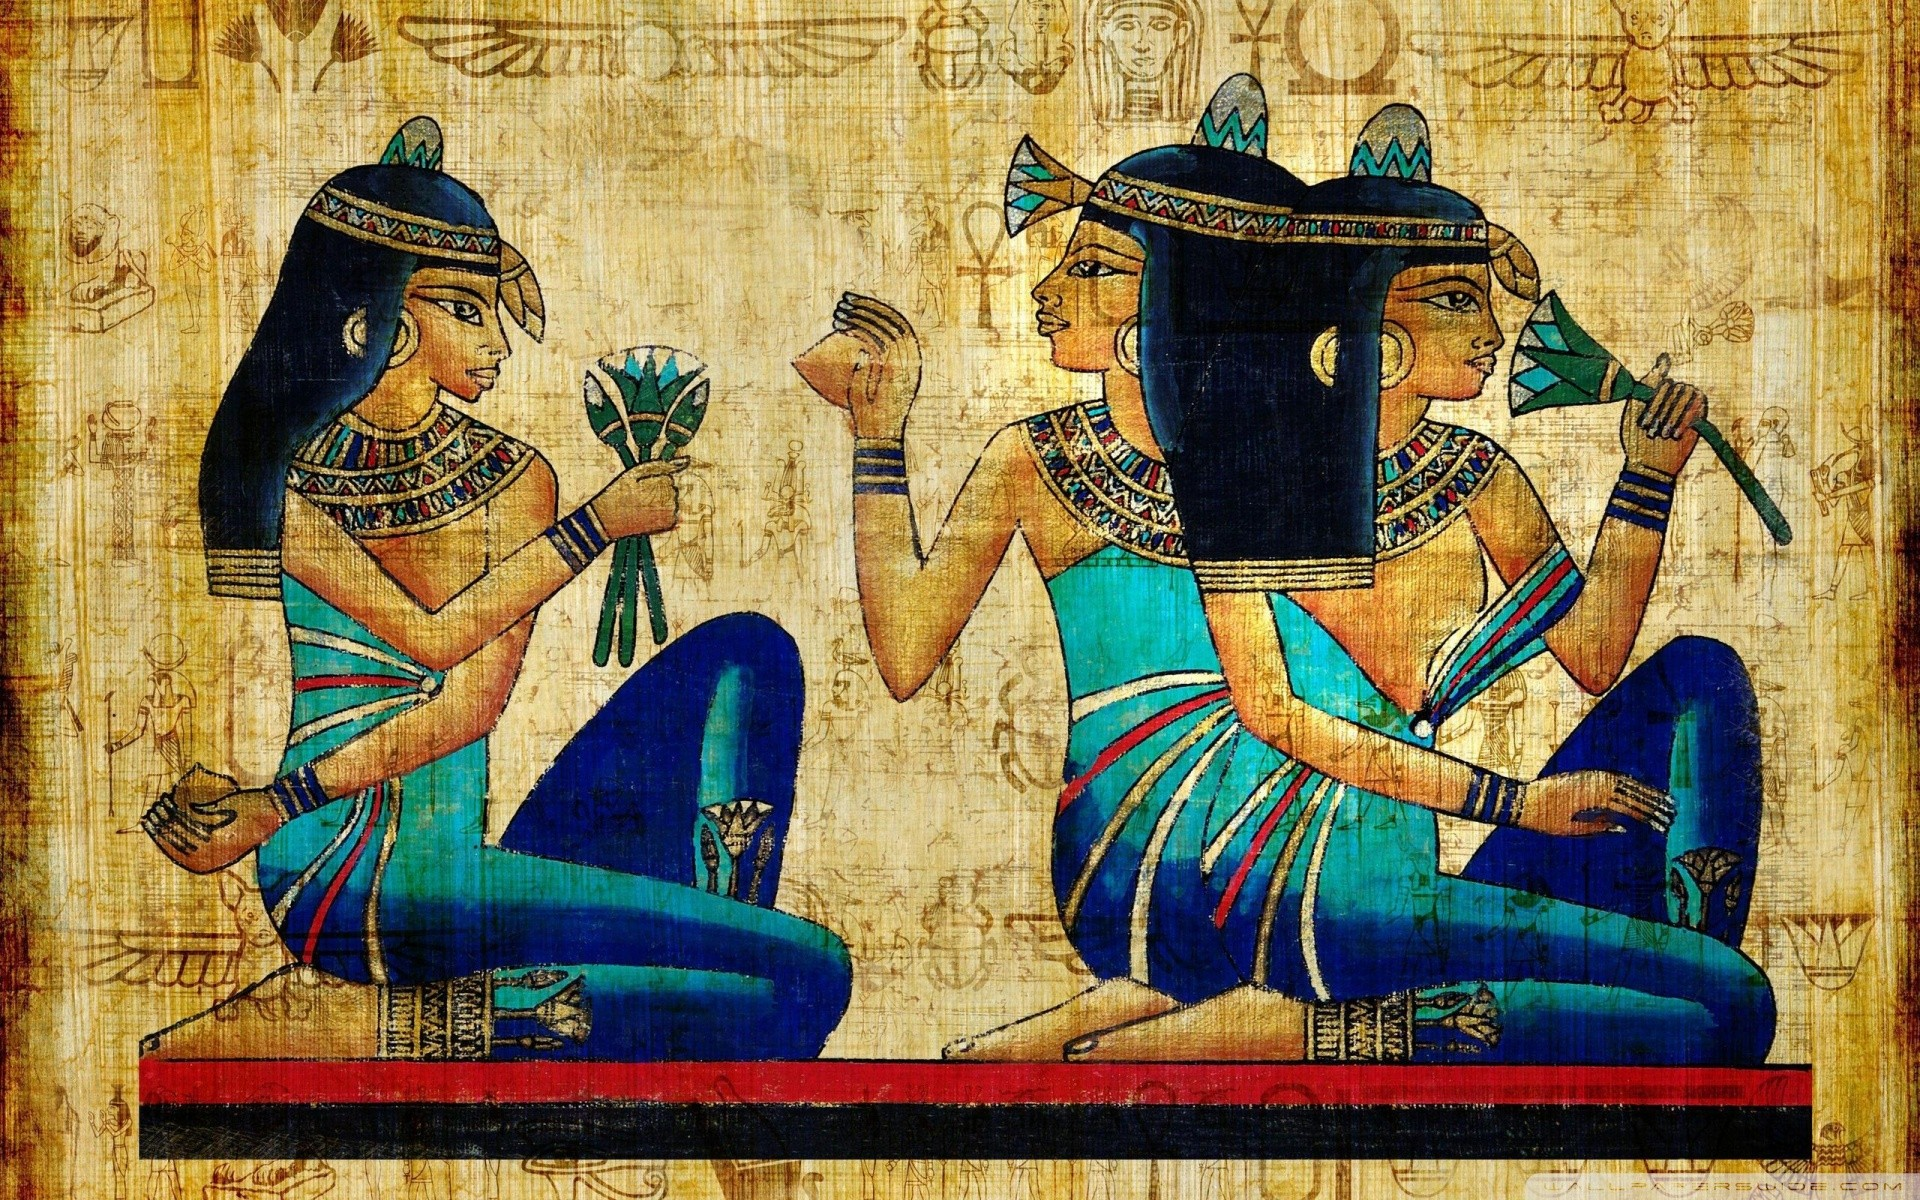 Free Art of Egypt Wallpapers, Free Art of Egypt HD Wallpapers, Art of ...